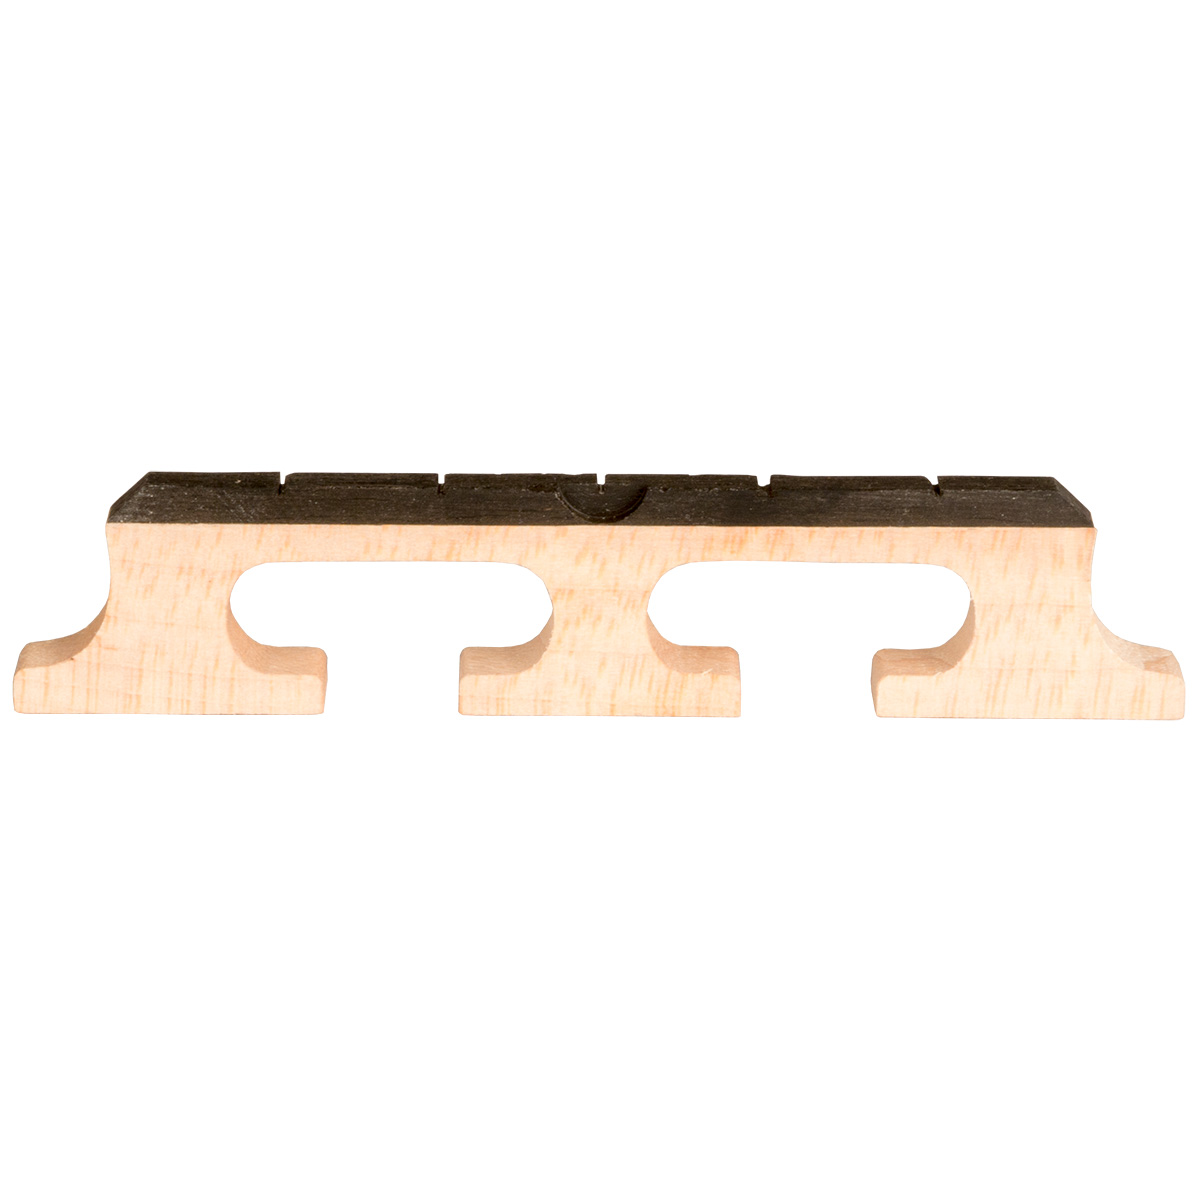 5-String Banjo Bridge: 5/8